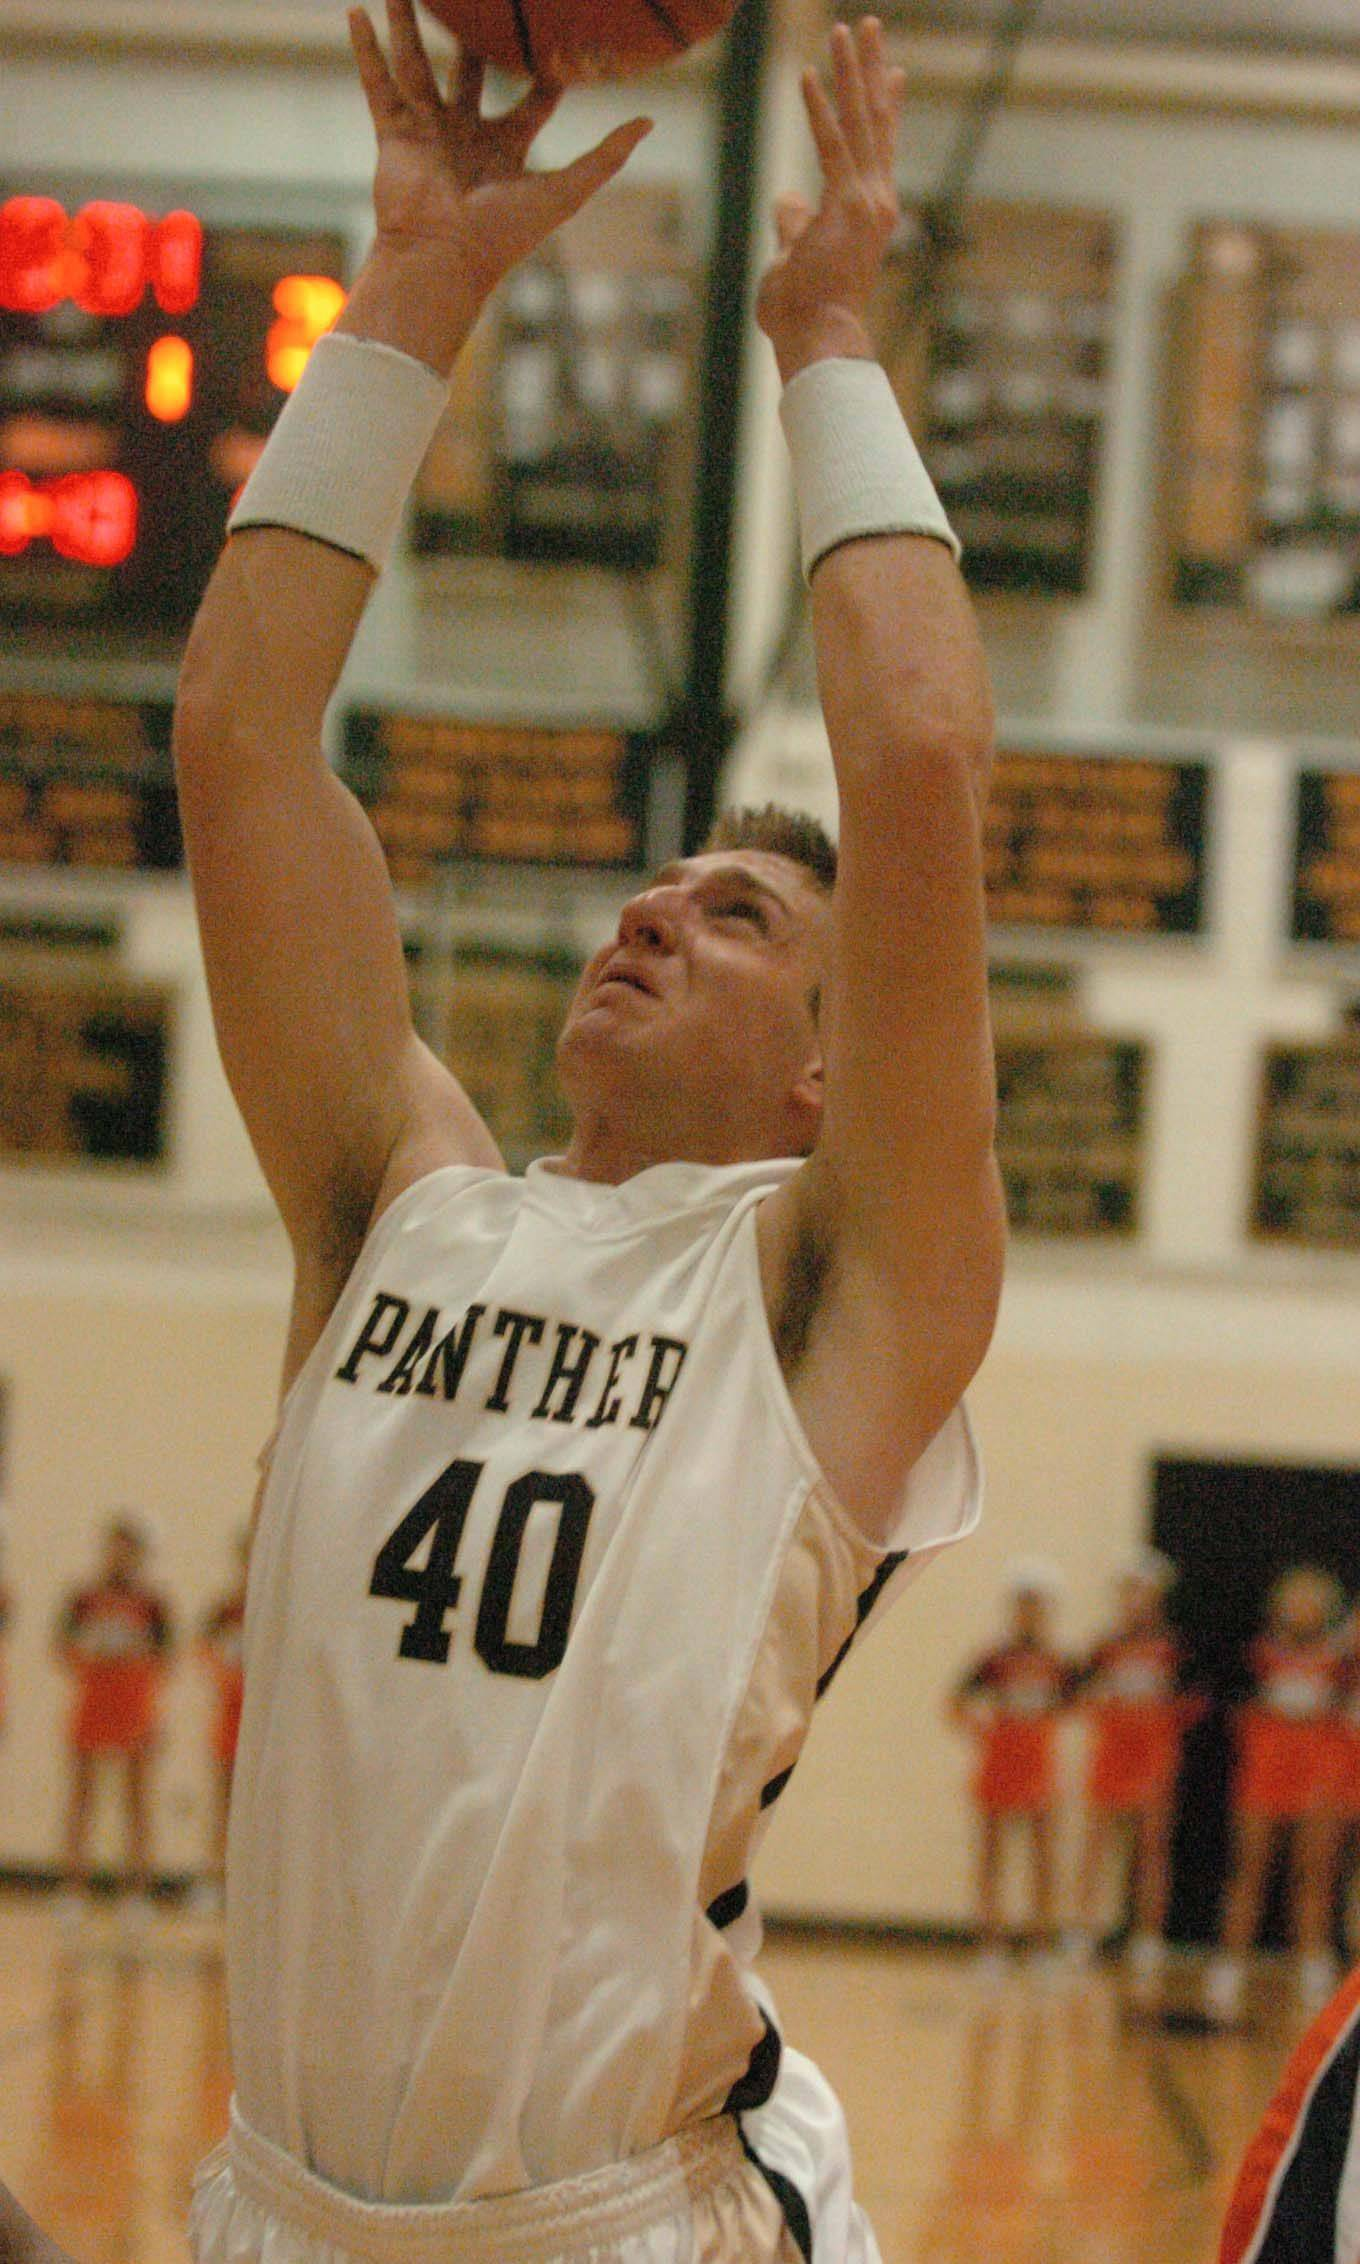 Matt Pemberton of Glenbard North goes up for a rebound against Naperville North.